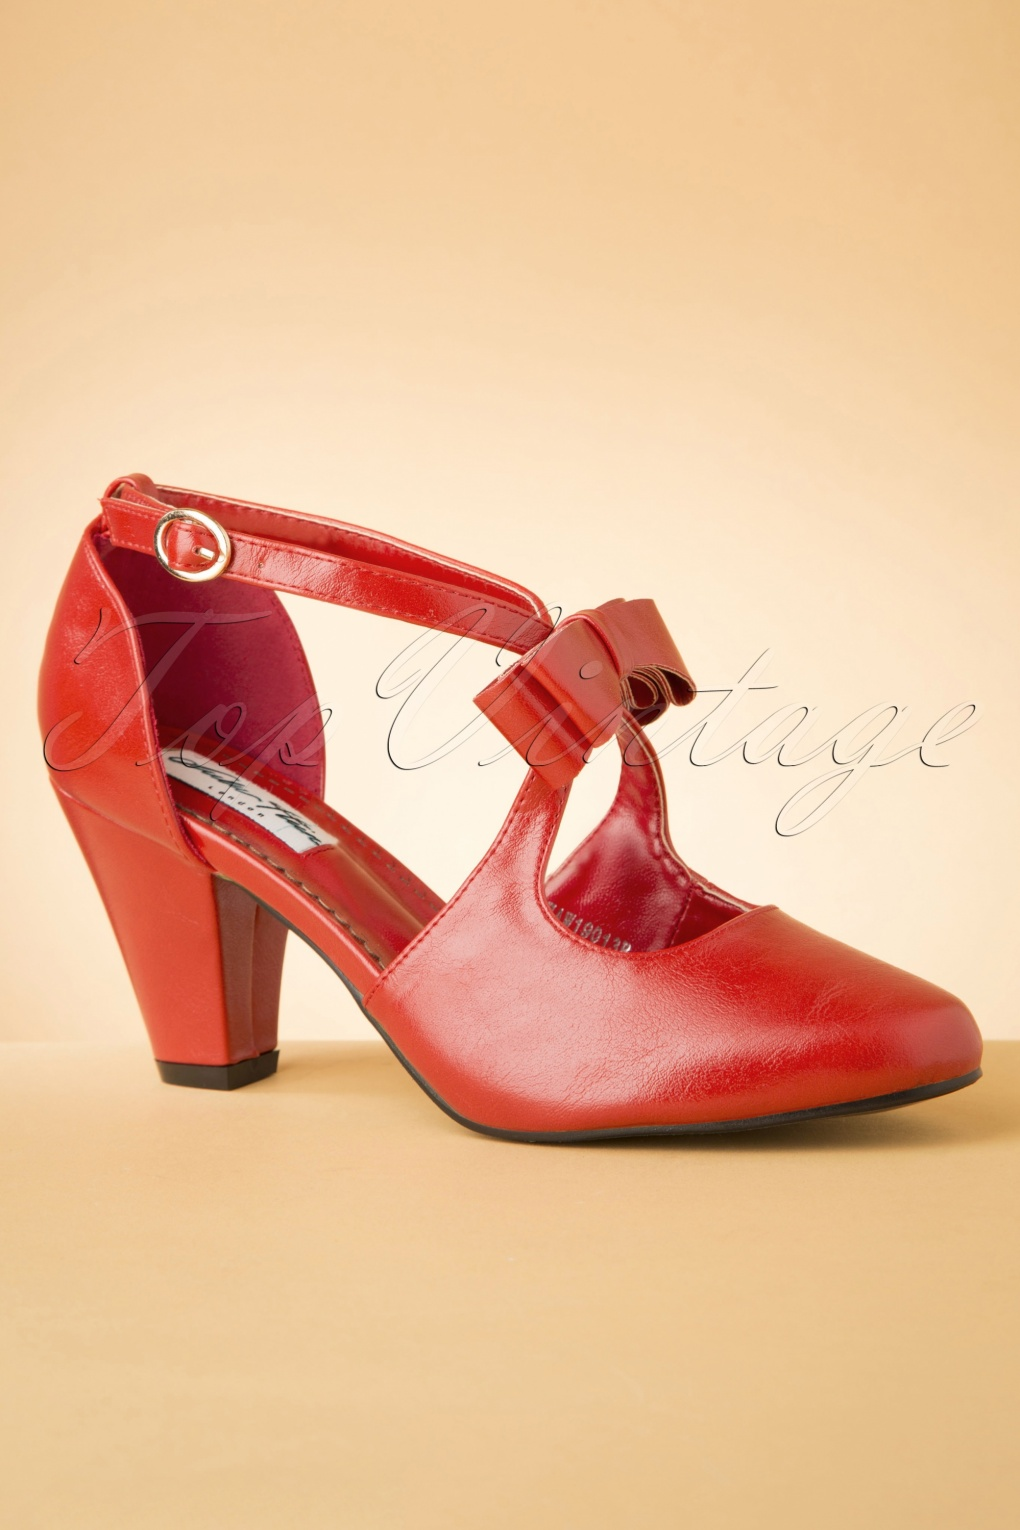 1950s Style Shoes | Heels, Flats, Saddle Shoes 50s Mona High Heels in Lipstick Red £47.34 AT vintagedancer.com